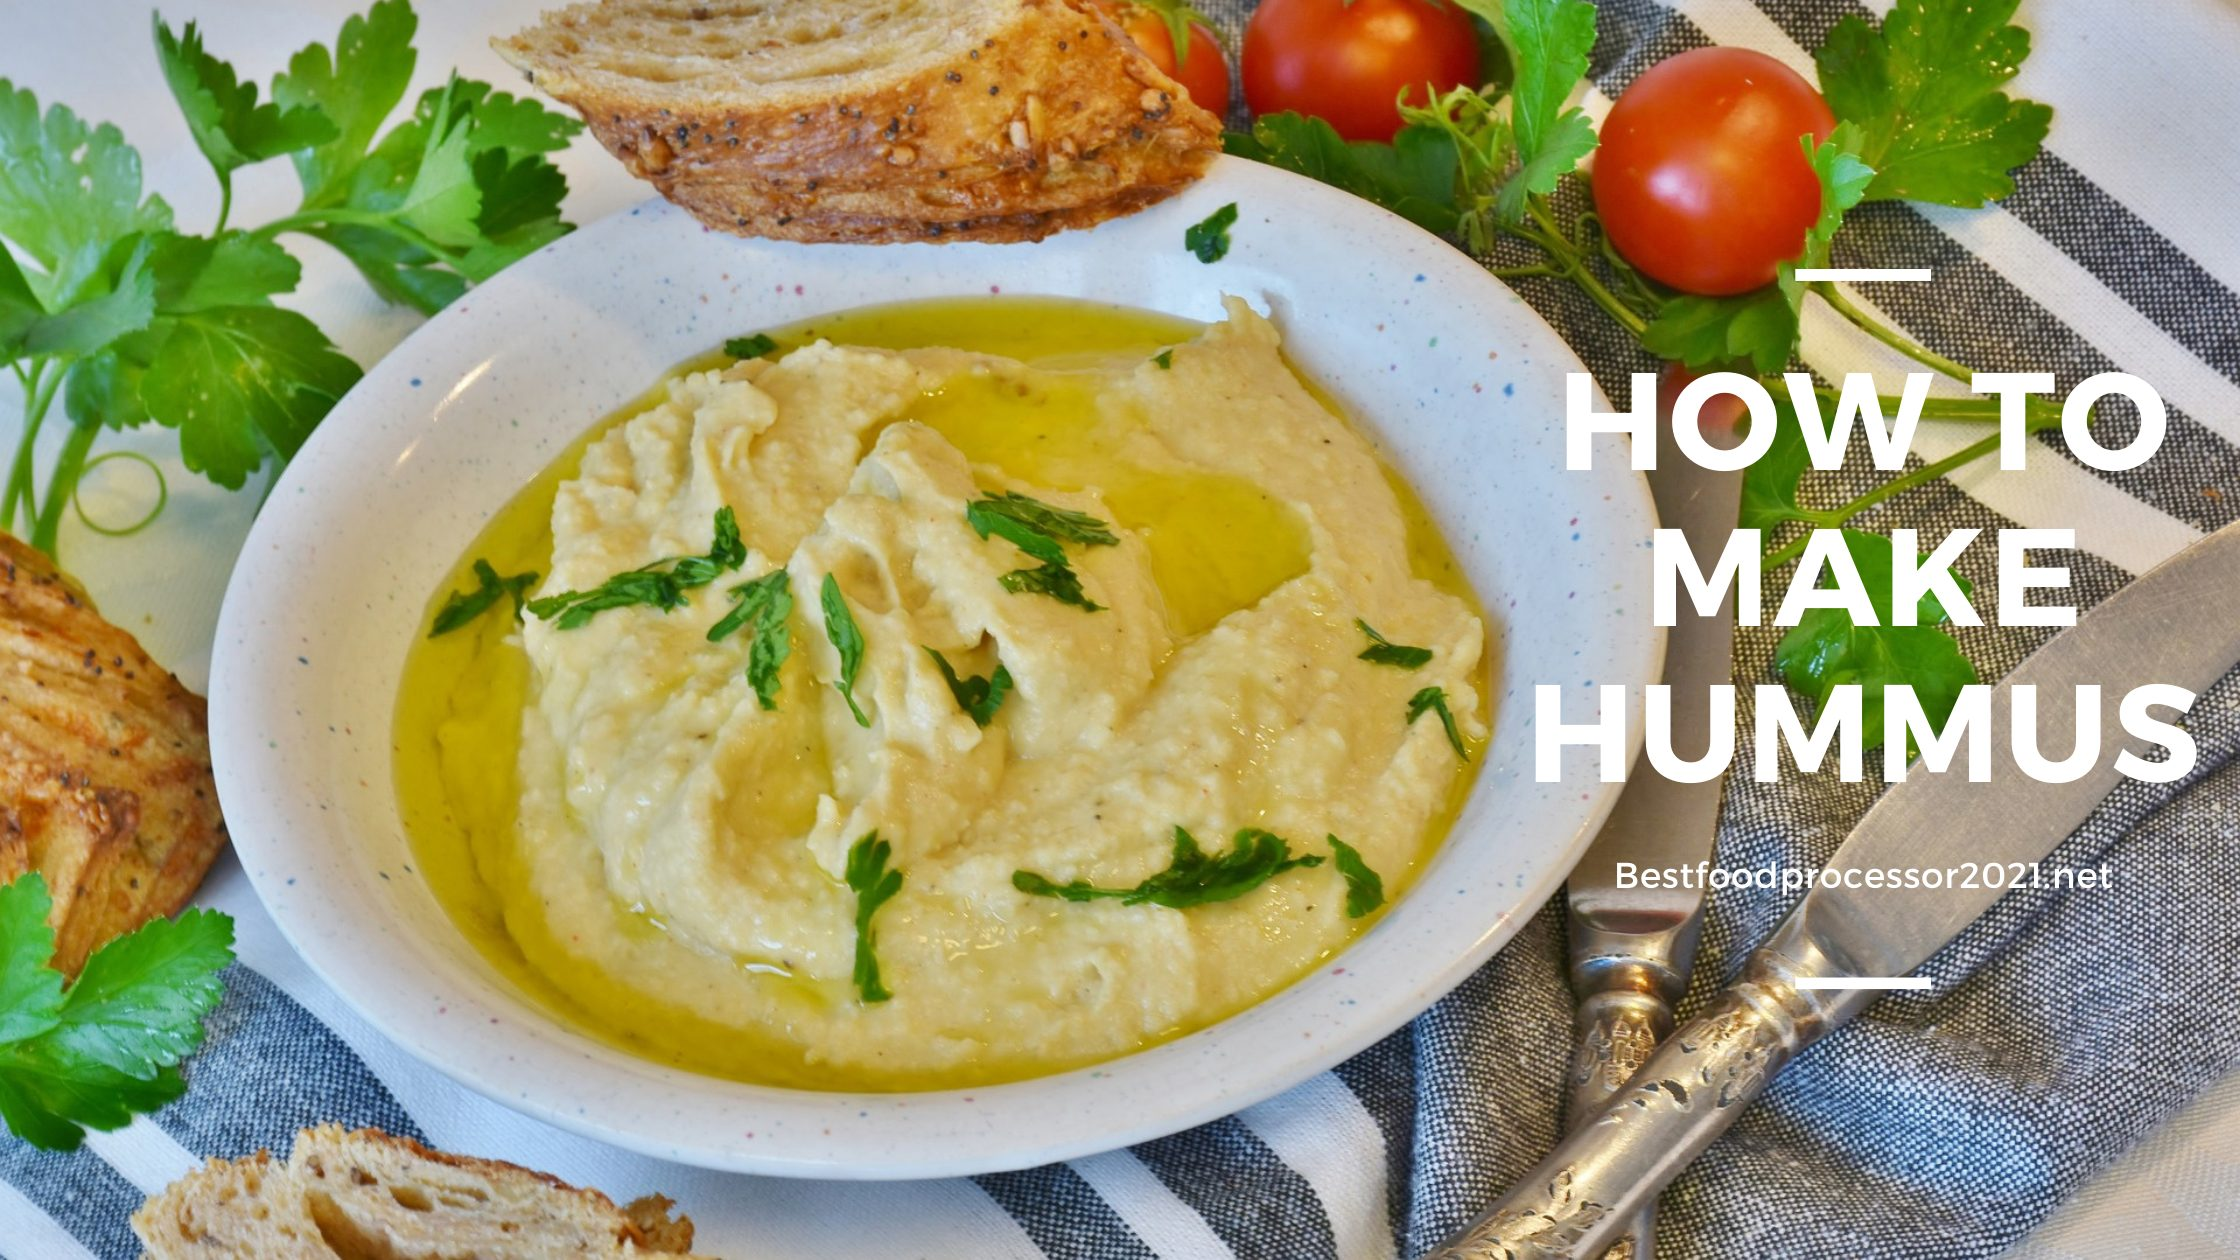 How to make hummus